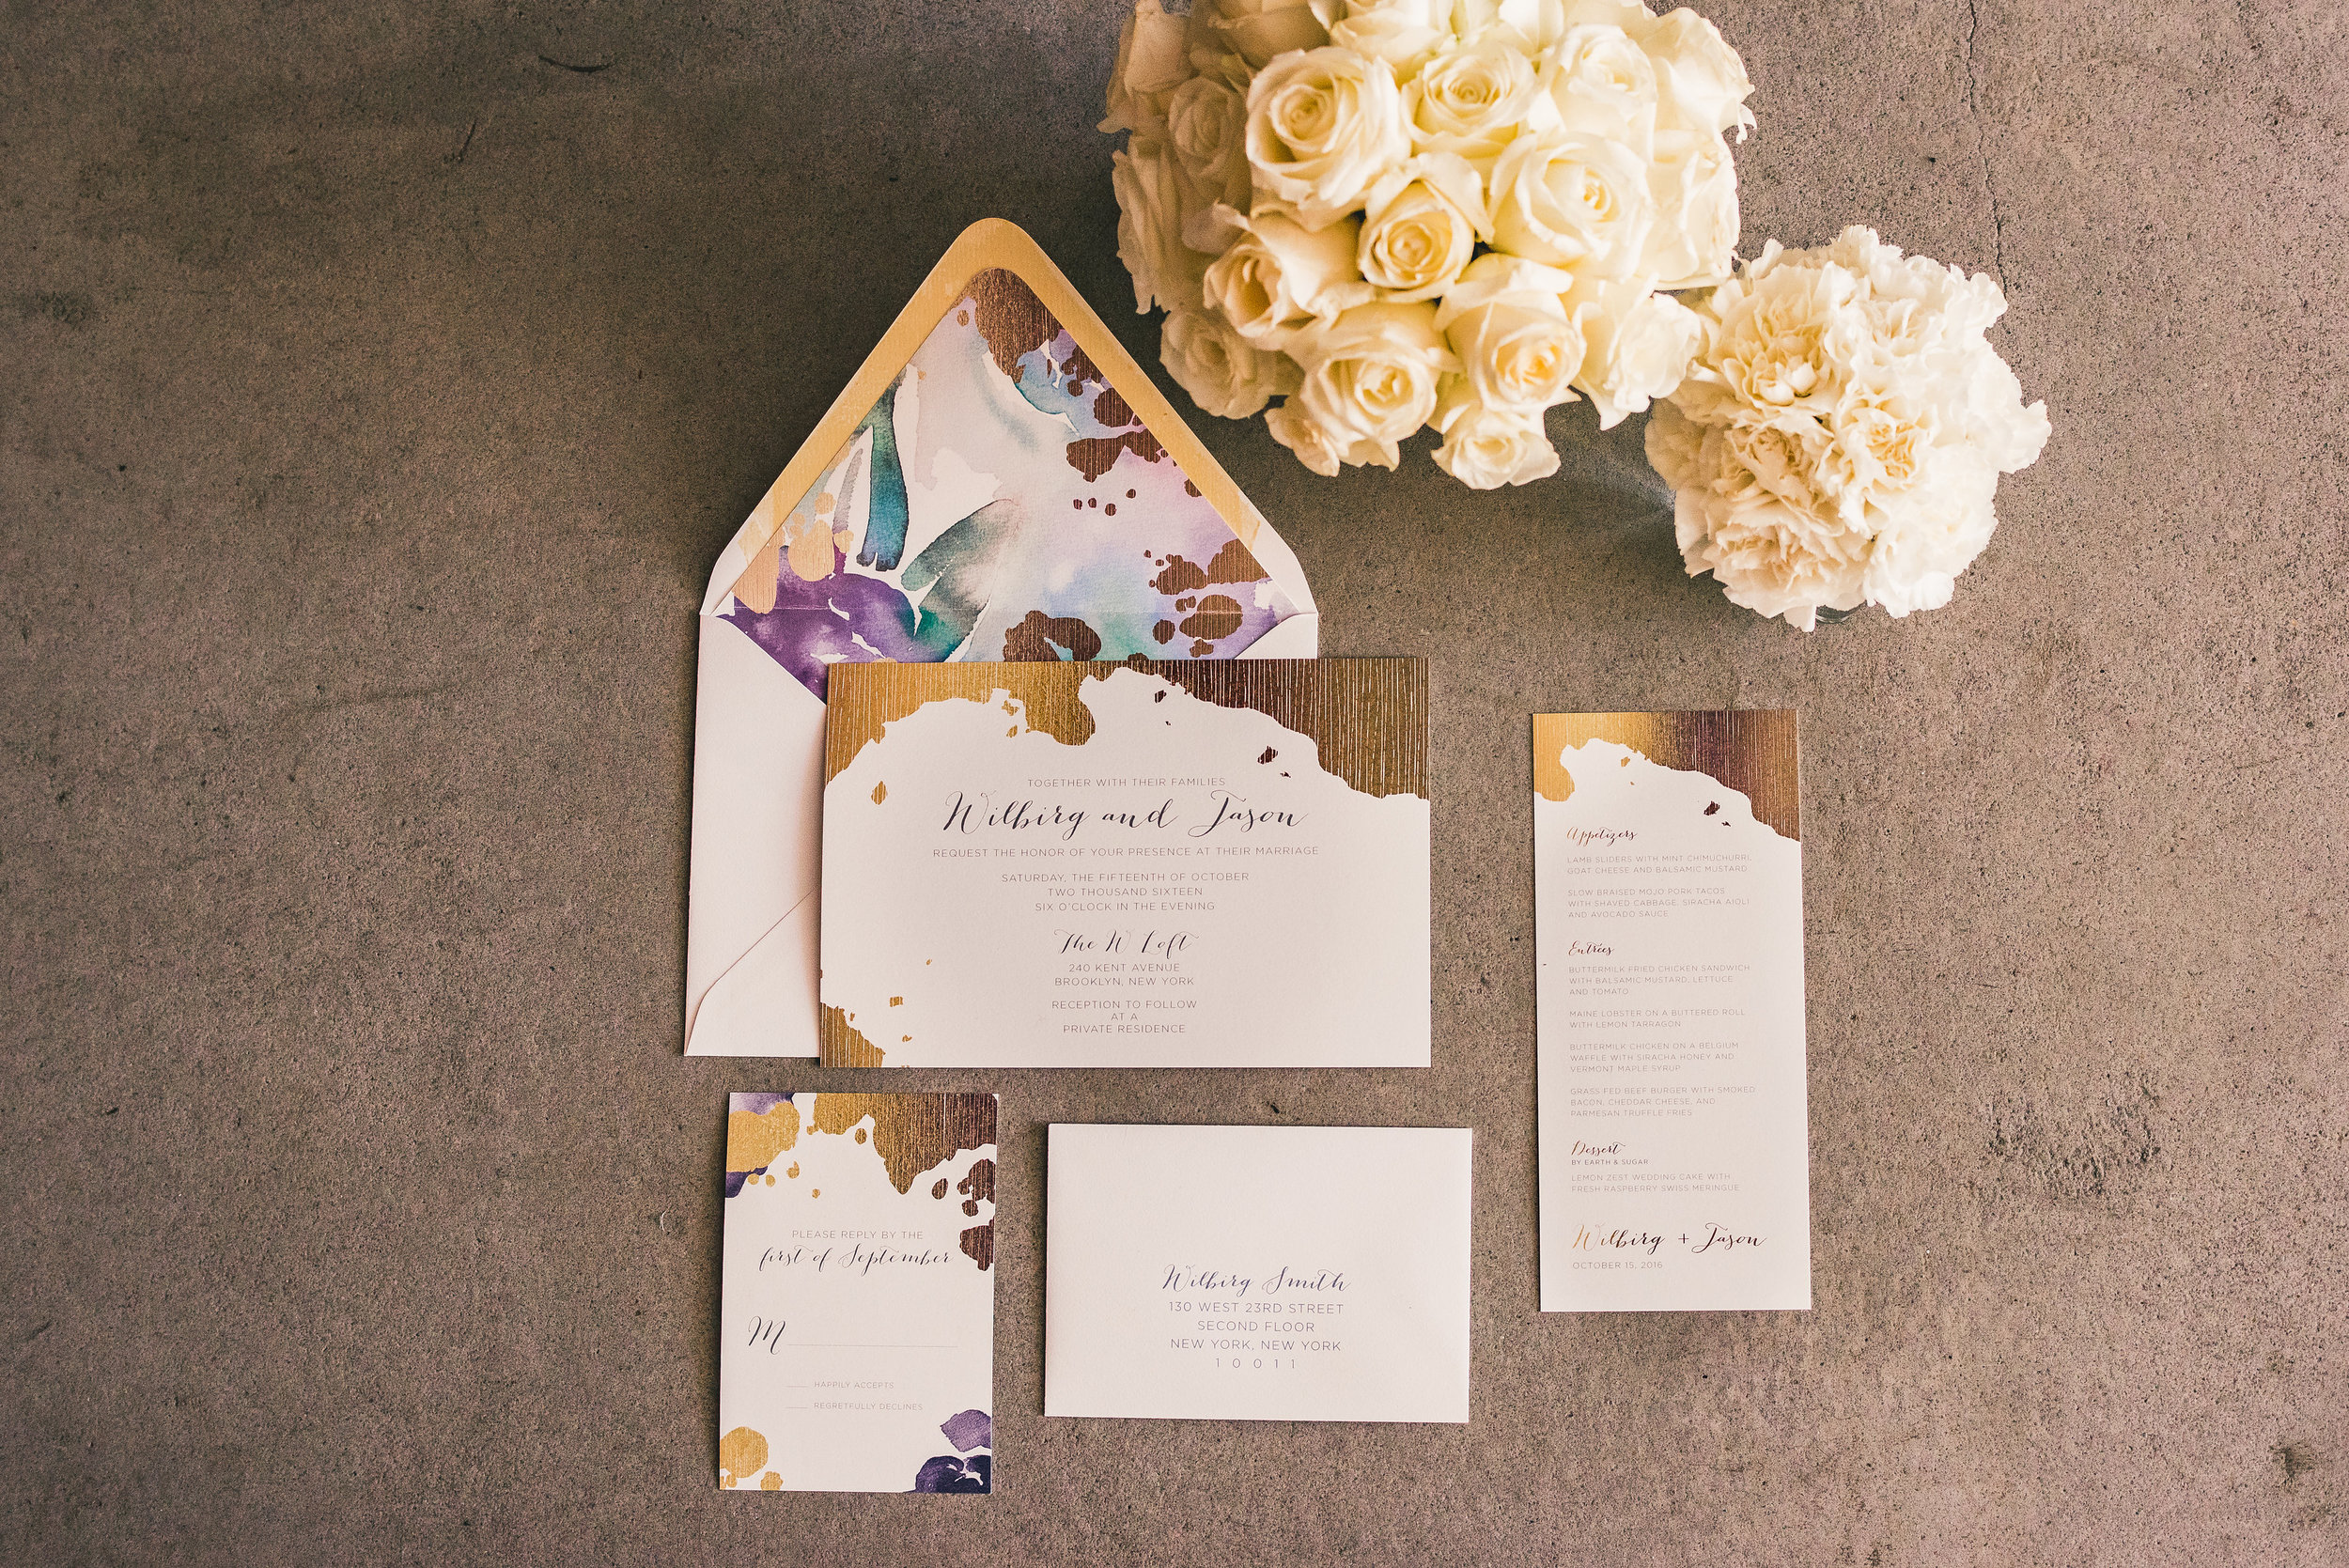 Michelle-Perez-Events-Styled-Shoot-13.jpg